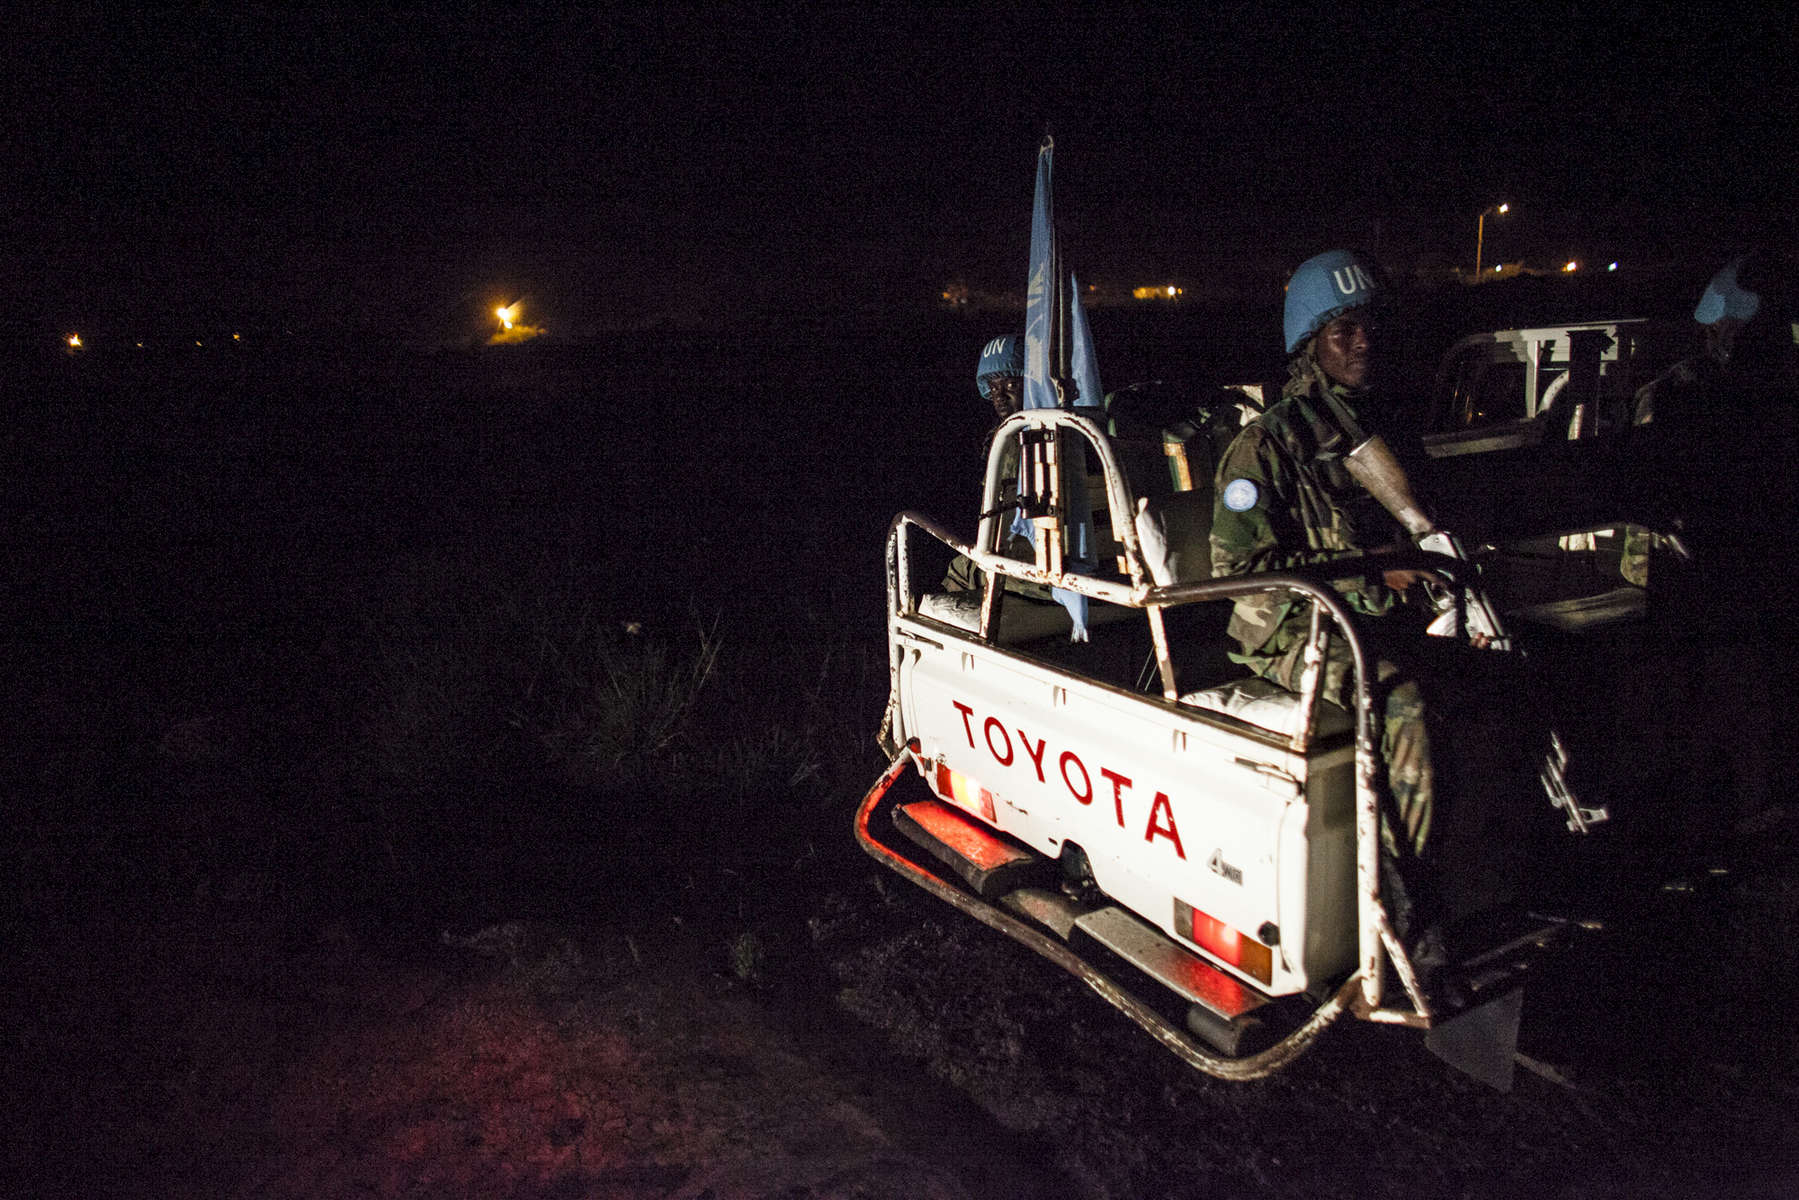 The Rwandan Battalion of the United Nations Peacekeepers patrols the perimeter of the Protection of Civilians (POC) site and the United Nations Mission in South Sudan (UNMISS) compound during a night patrol in Malakal, South Sudan on Monday, July 11, 2016. The UN has assured the displaced people that increased security measures around the camp will protect them from any further attack. Most of the displace are not convinced. The Malakal POC site houses over 32,000 displaced people mainly from the Shilluk and Nuer tribes. In February of this year, members of the Dinka tribe, who resided in the camp at the time, carried out a coordinated attack within the site leading to the destruction of hundreds of shelters and many deaths. Since then, most members of the Dinka tribe have fled to Malakal town where they occupy the homes of those still displaced.